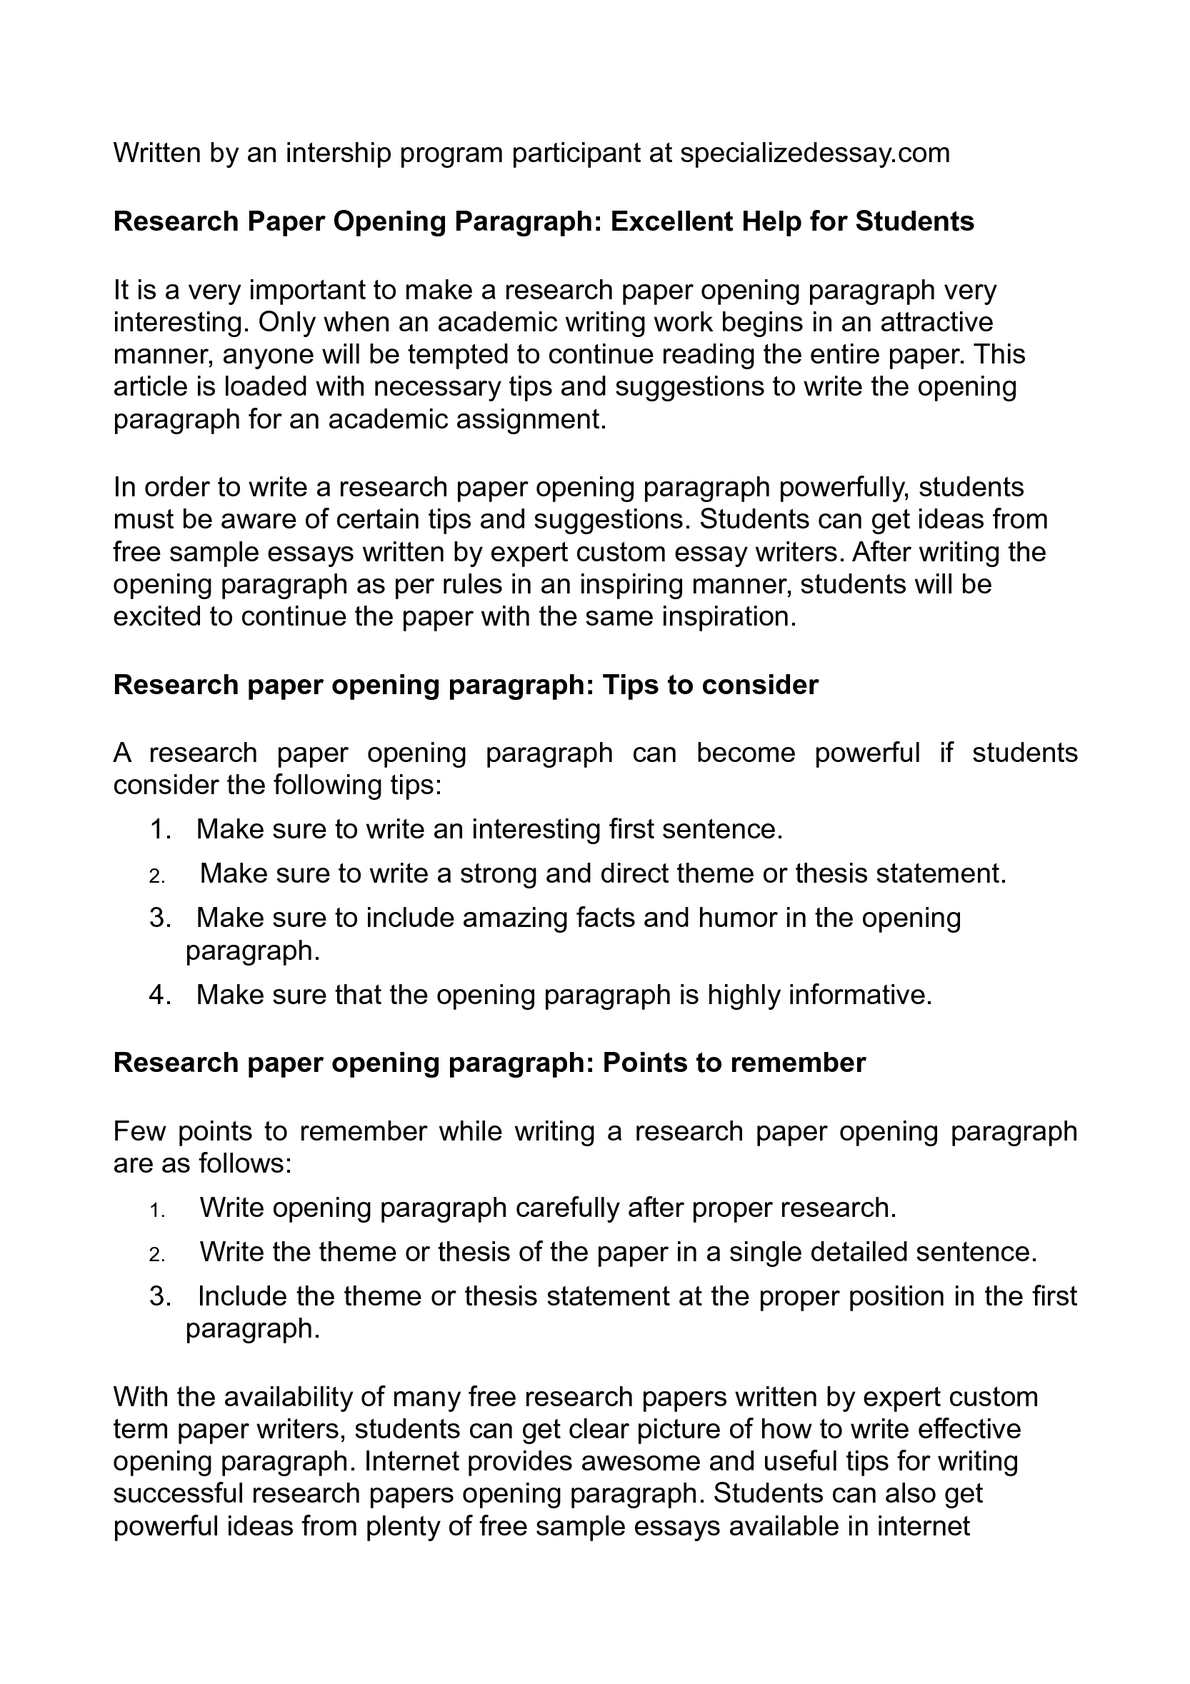 003 Research Paper Good Opening Paragraph For Rare Introductory A Conclusion Introduction Full